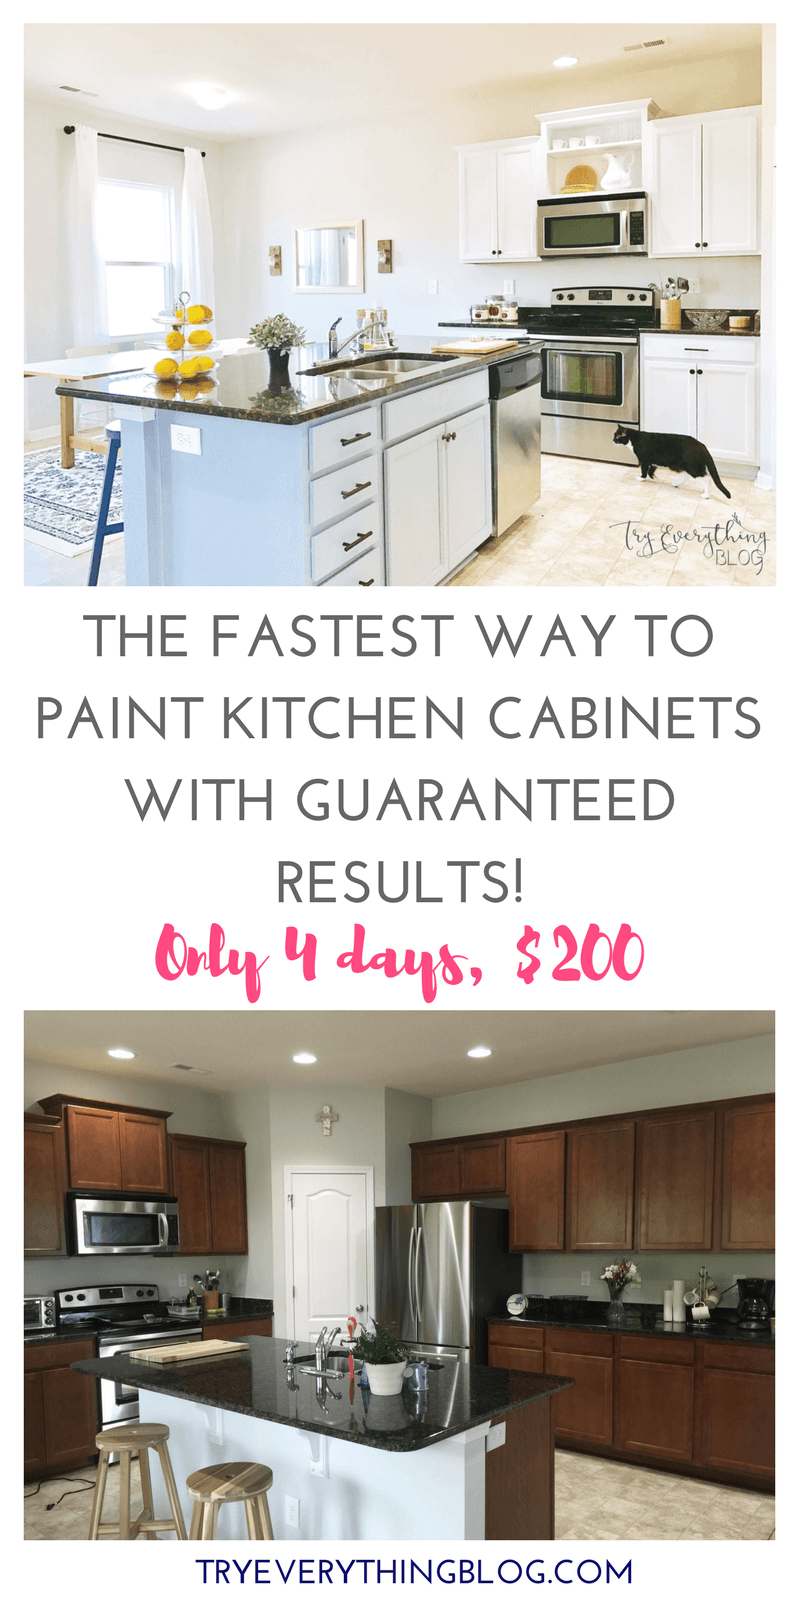 The Fastest Way To Paint Kitchen Cabinets With The Best Results 4 Days Less Than 200 Try Everything Painting Kitchen Cabinets Painting Kitchen Cabinets White New Kitchen Cabinets